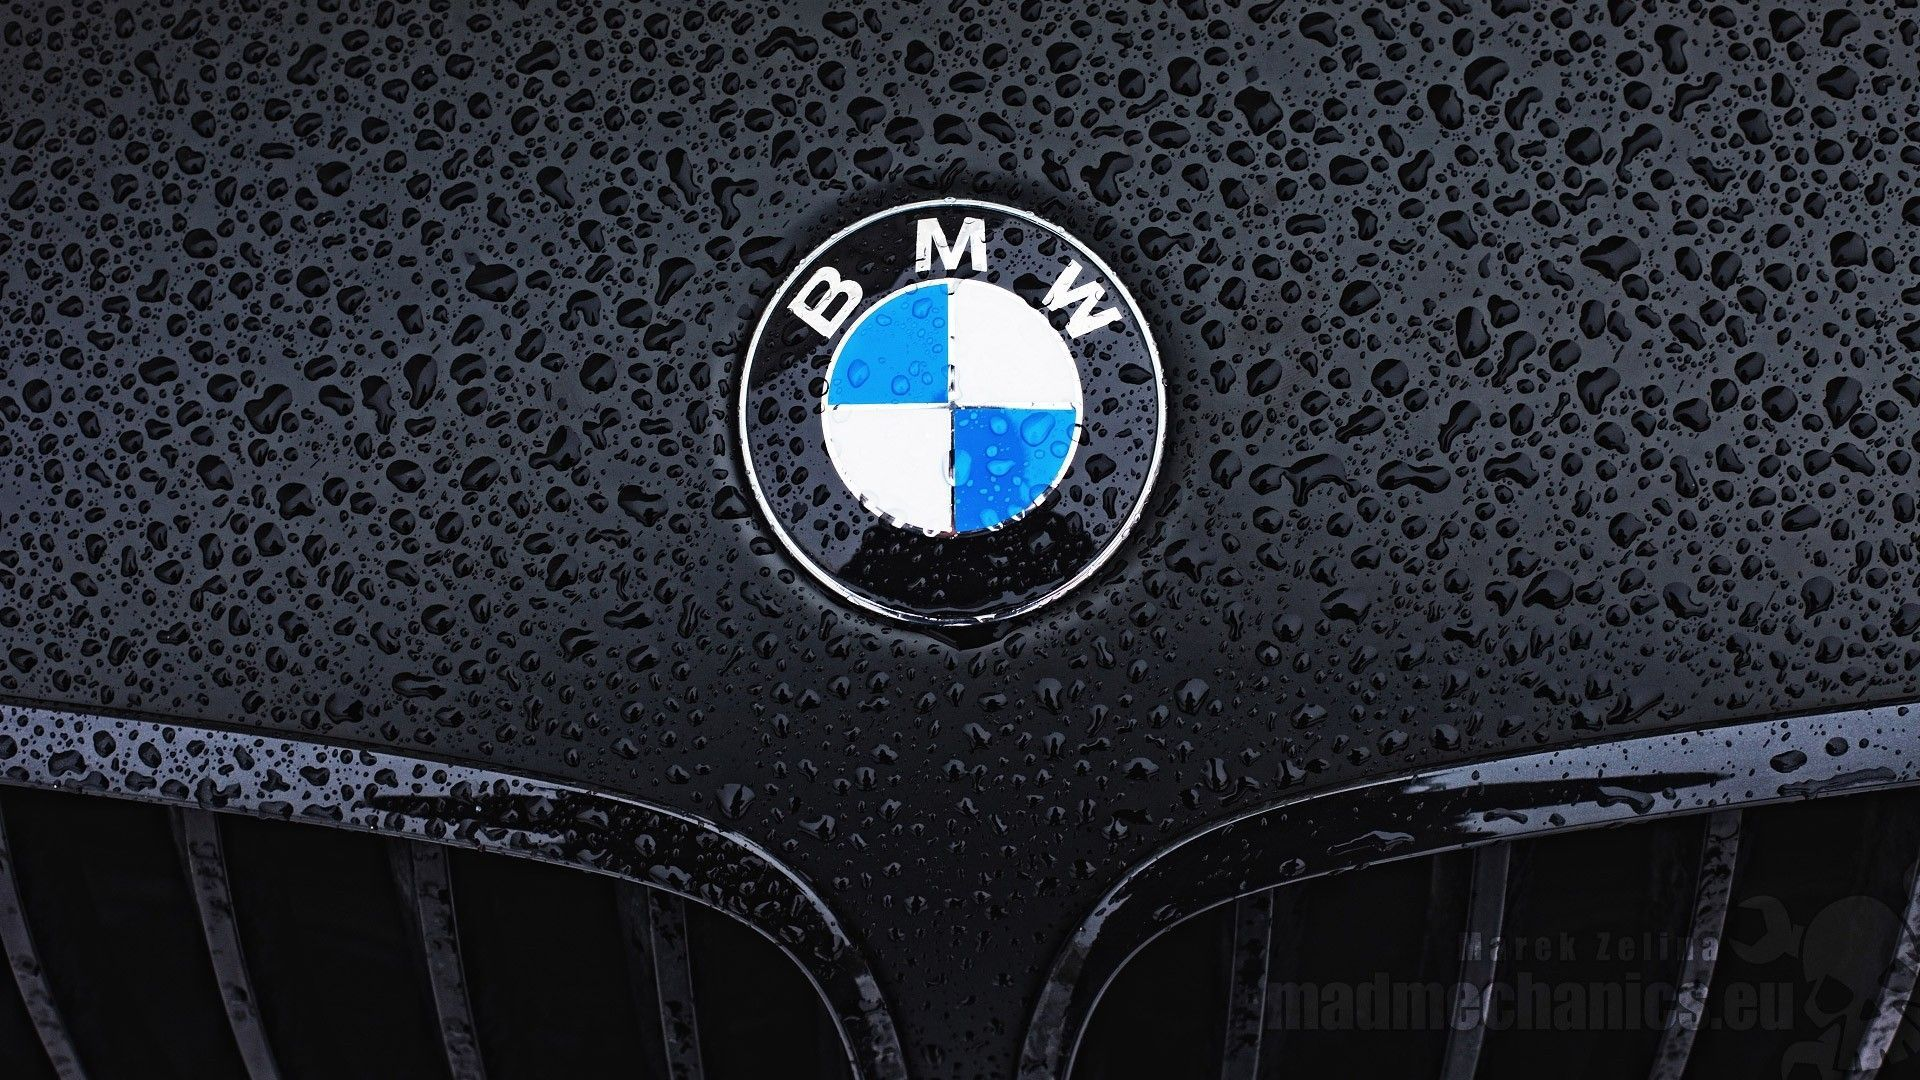 BMW-M-Logo-Cave-wallpaper-wpc5802957